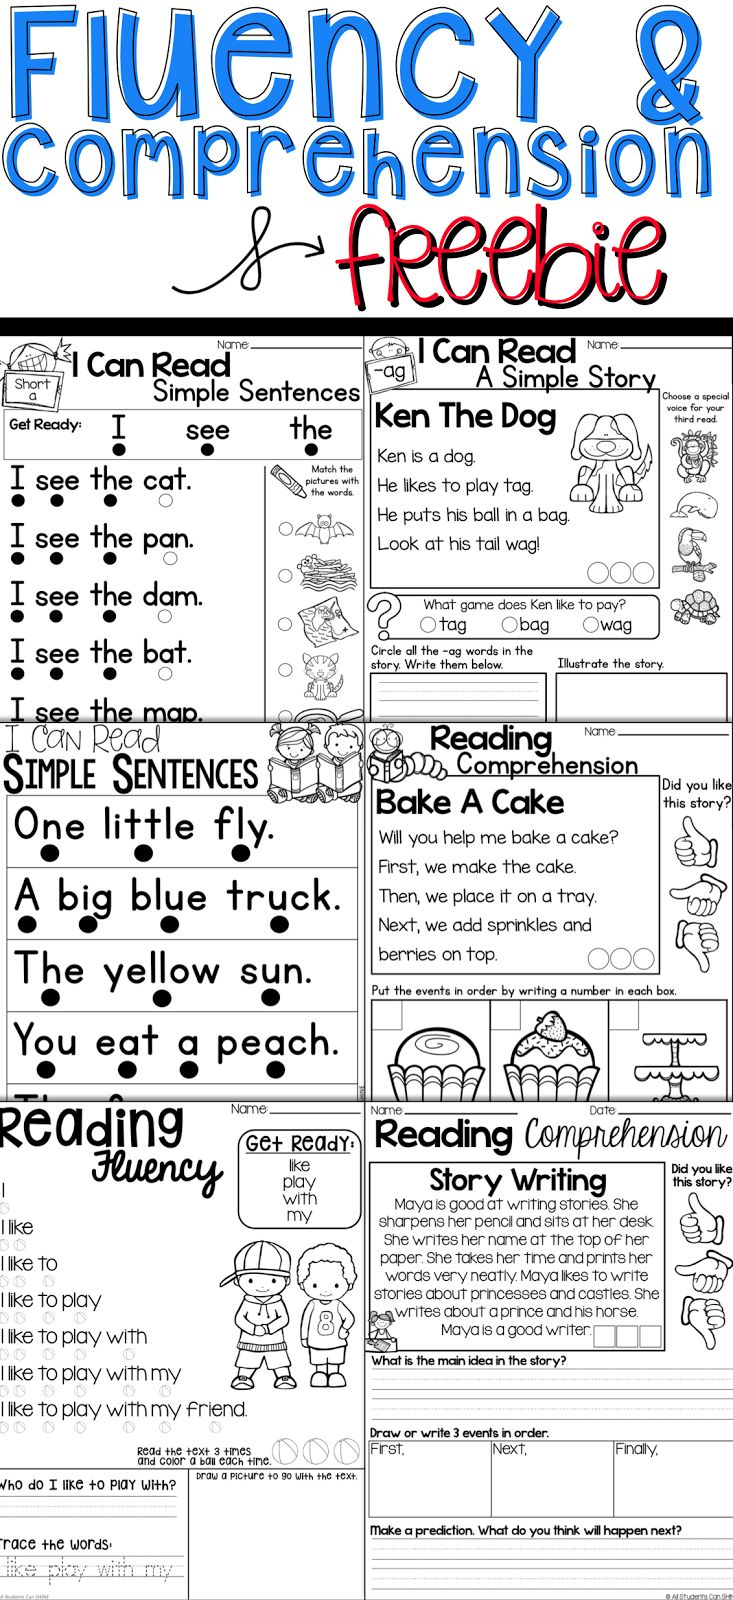 165 best Second Grade images on Pinterest   Bunny rabbit, Easter and ...